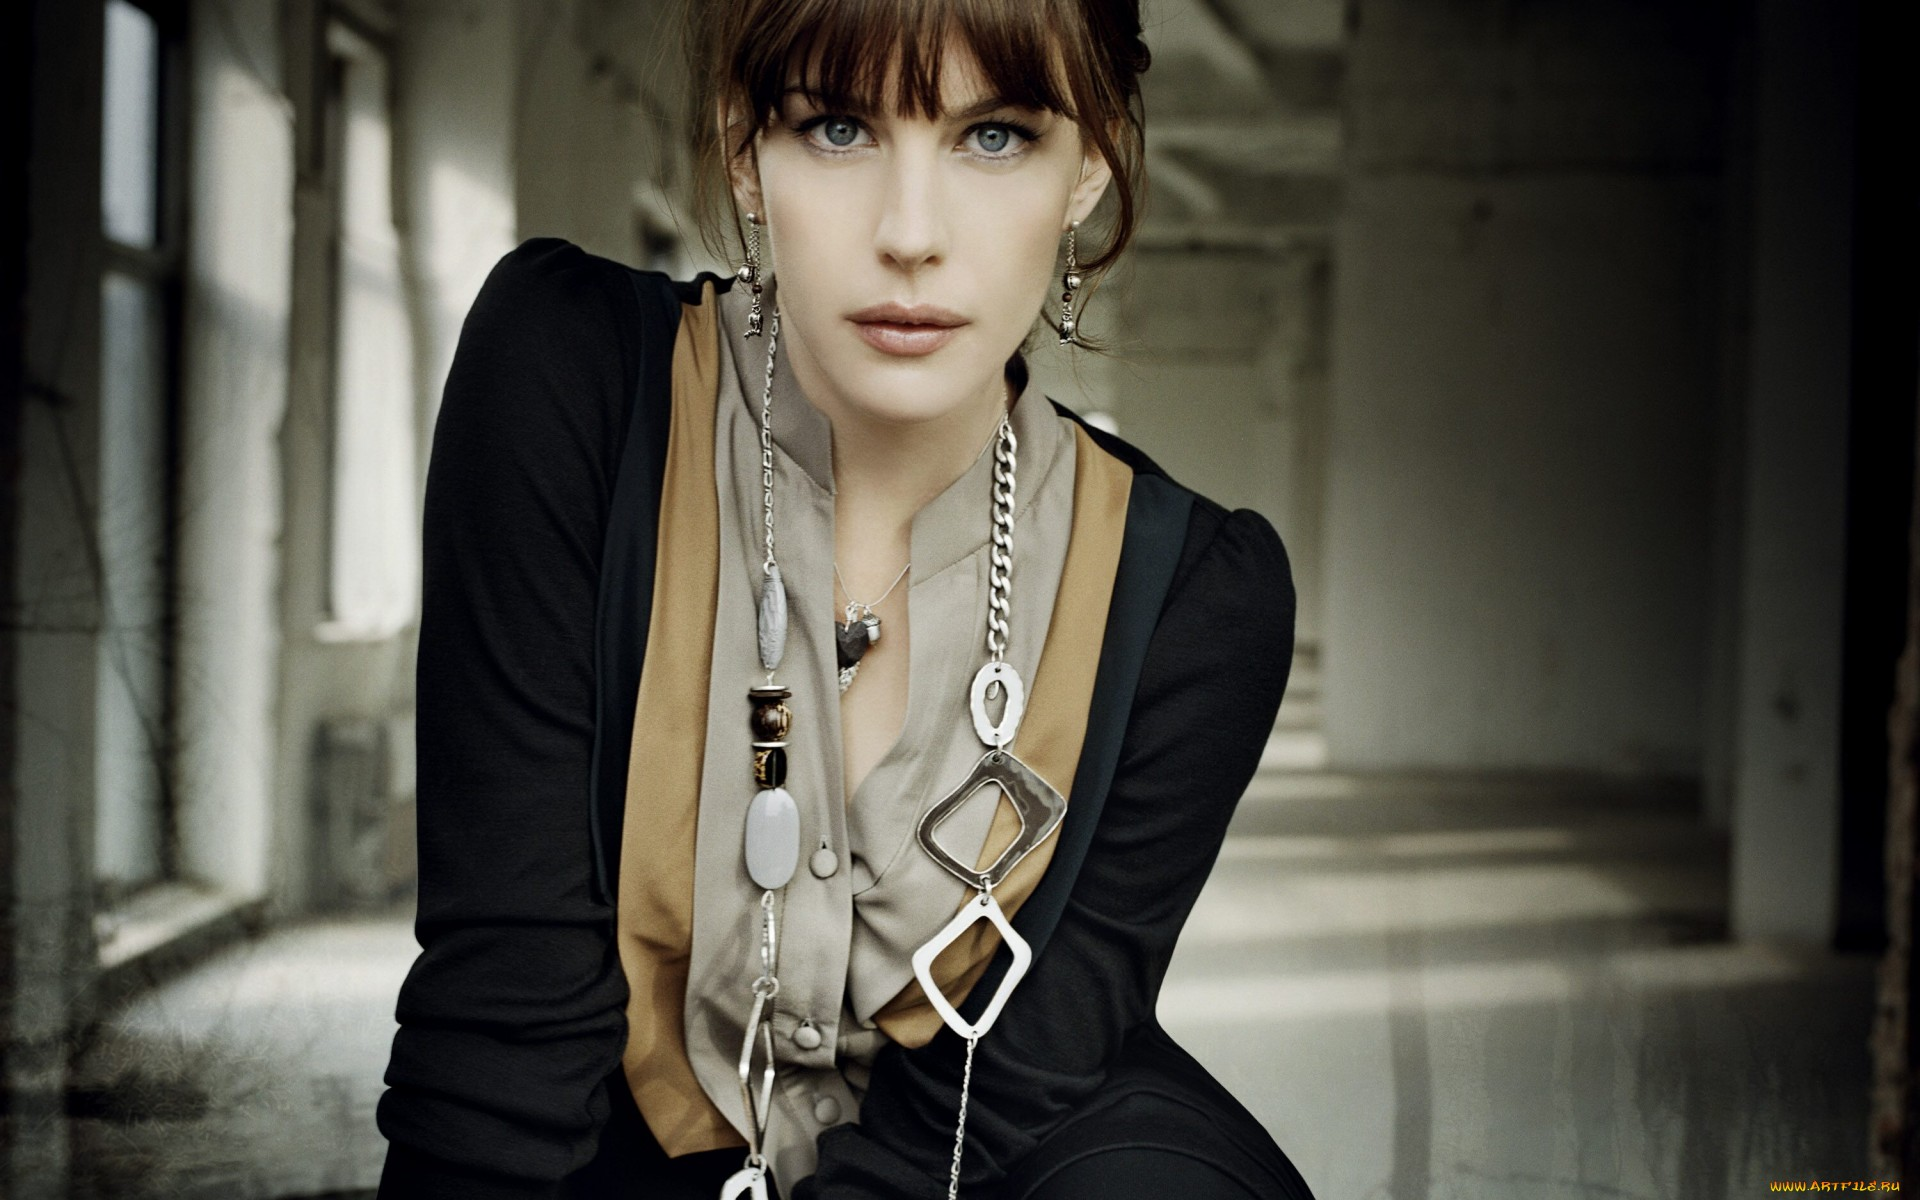 Cute Wallpaper Galaxy Note Cute Liv Tyler Hot And Sexy Wallpapers All Hd Wallpapers